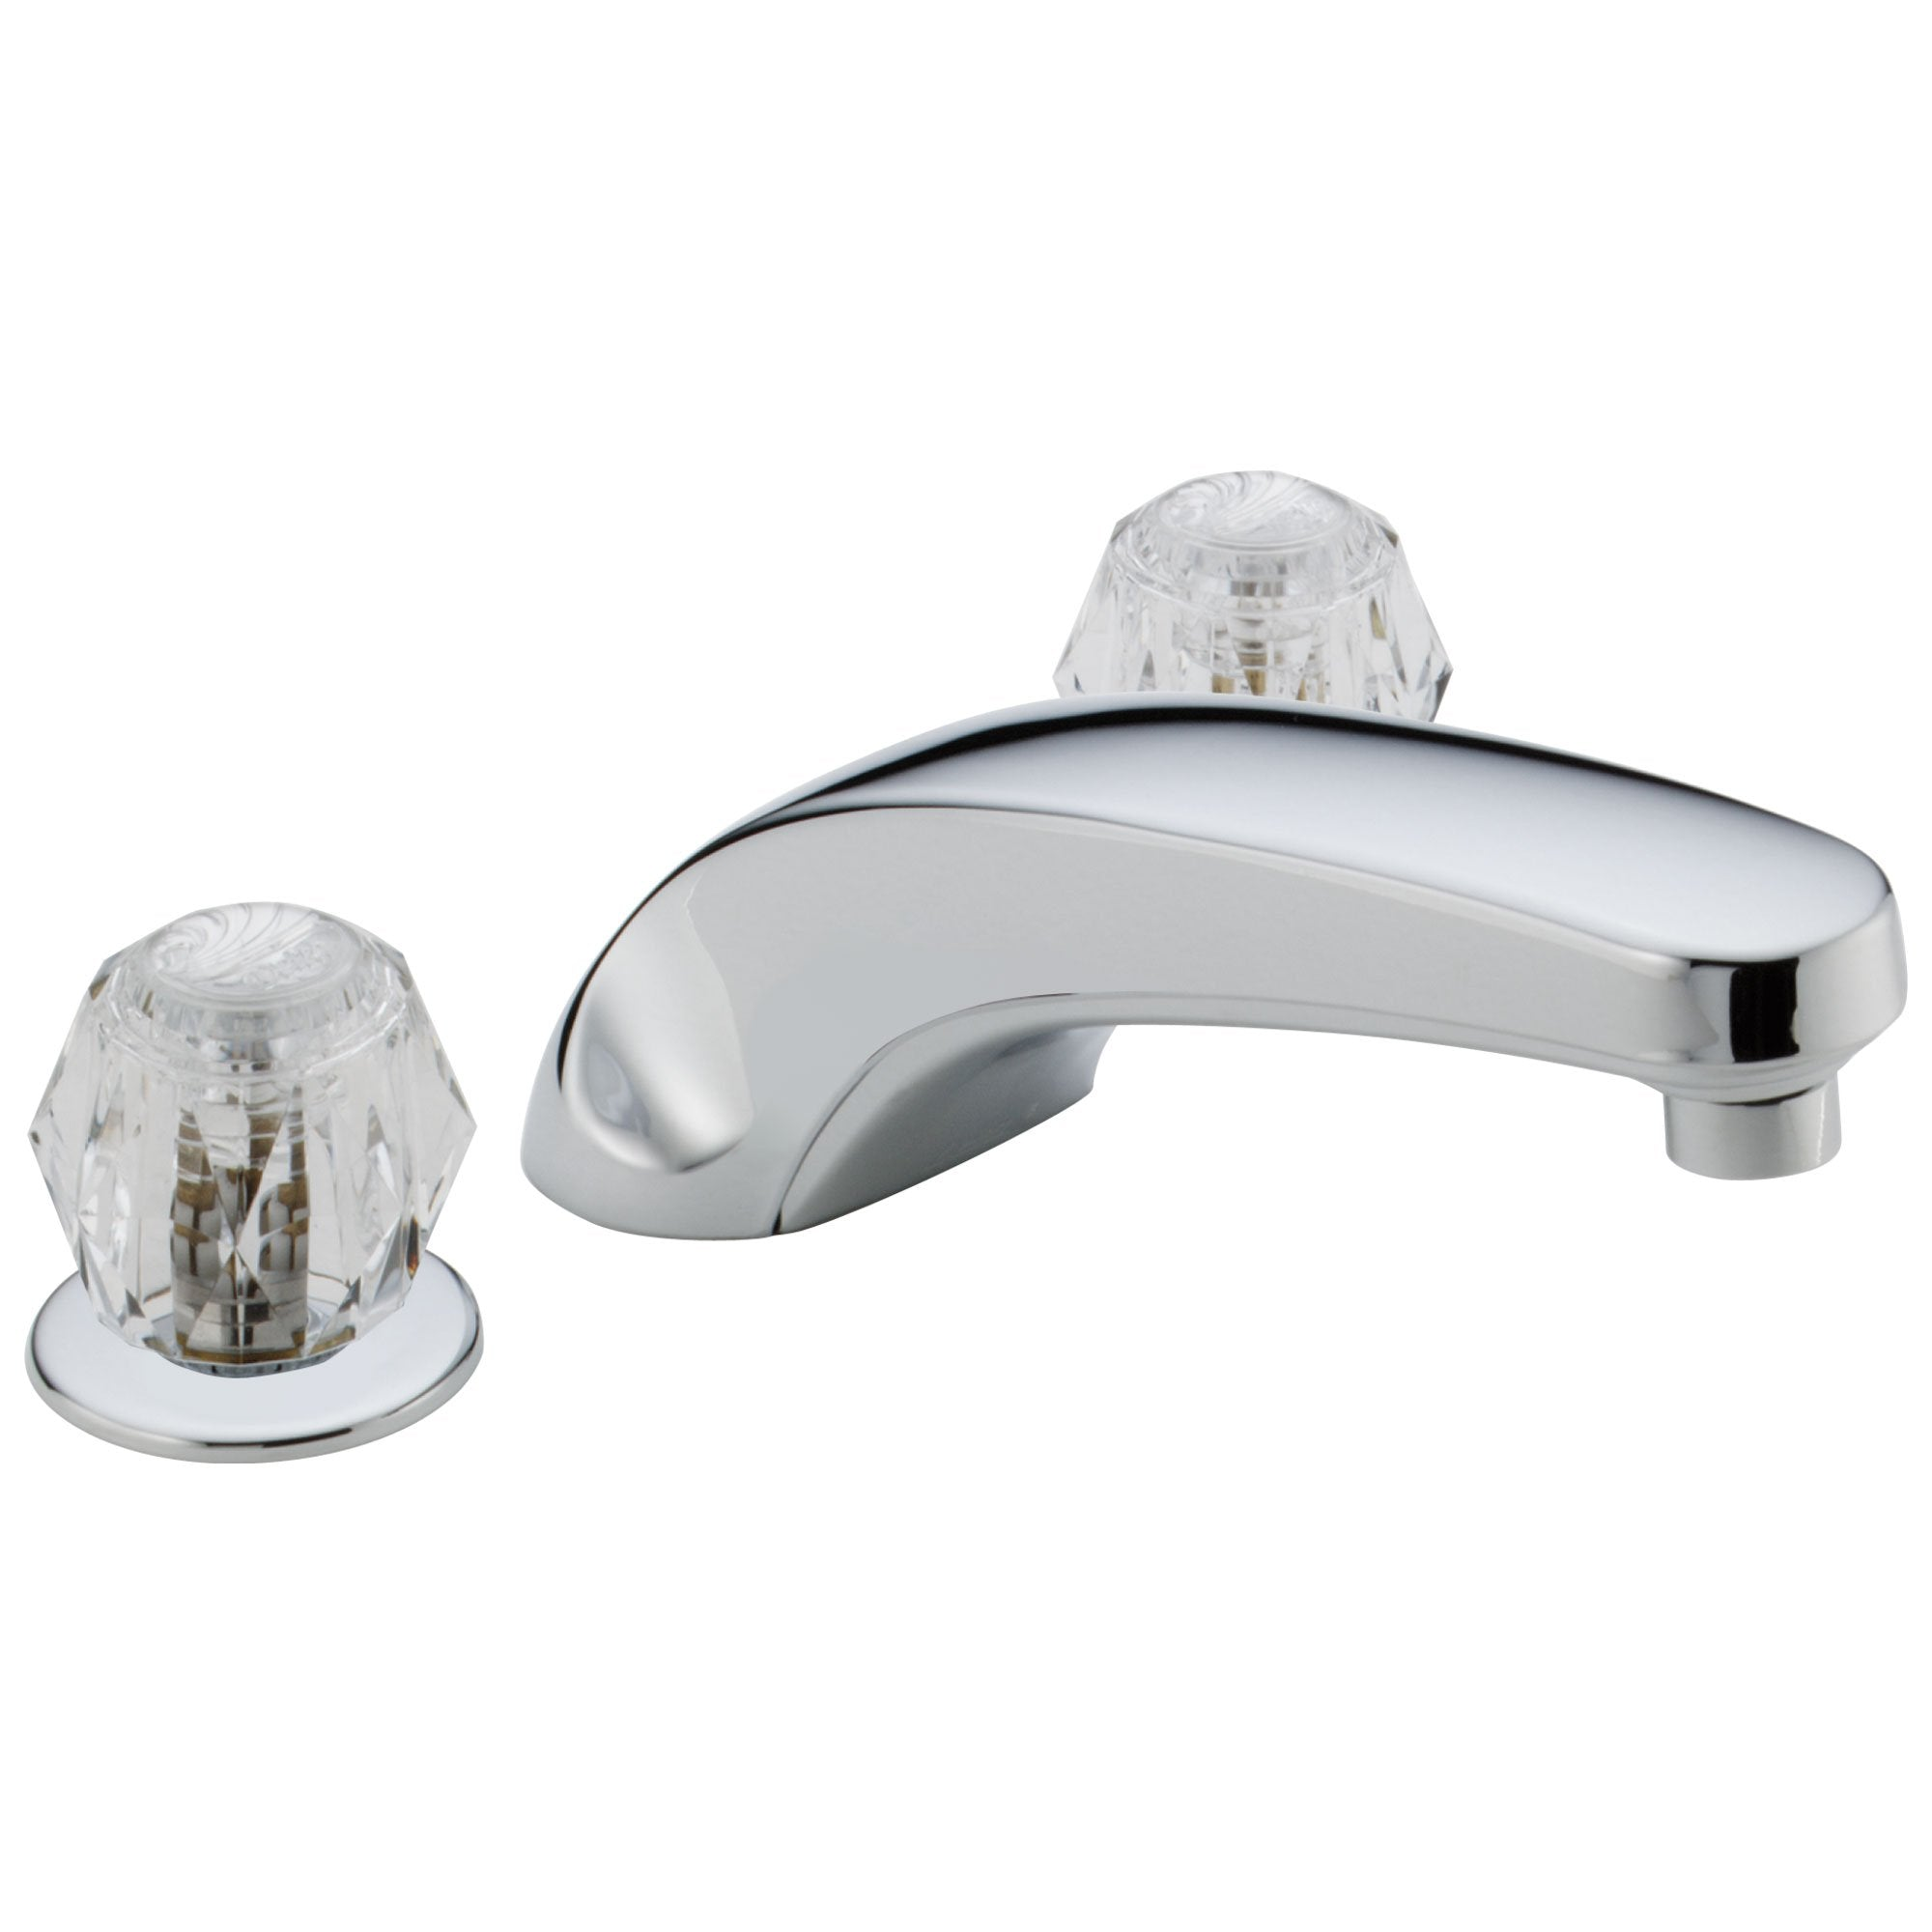 Delta Chrome Finish Deck Mounted Widespread Roman Tub Filler Faucet Includes Rough-in Valve D2183V